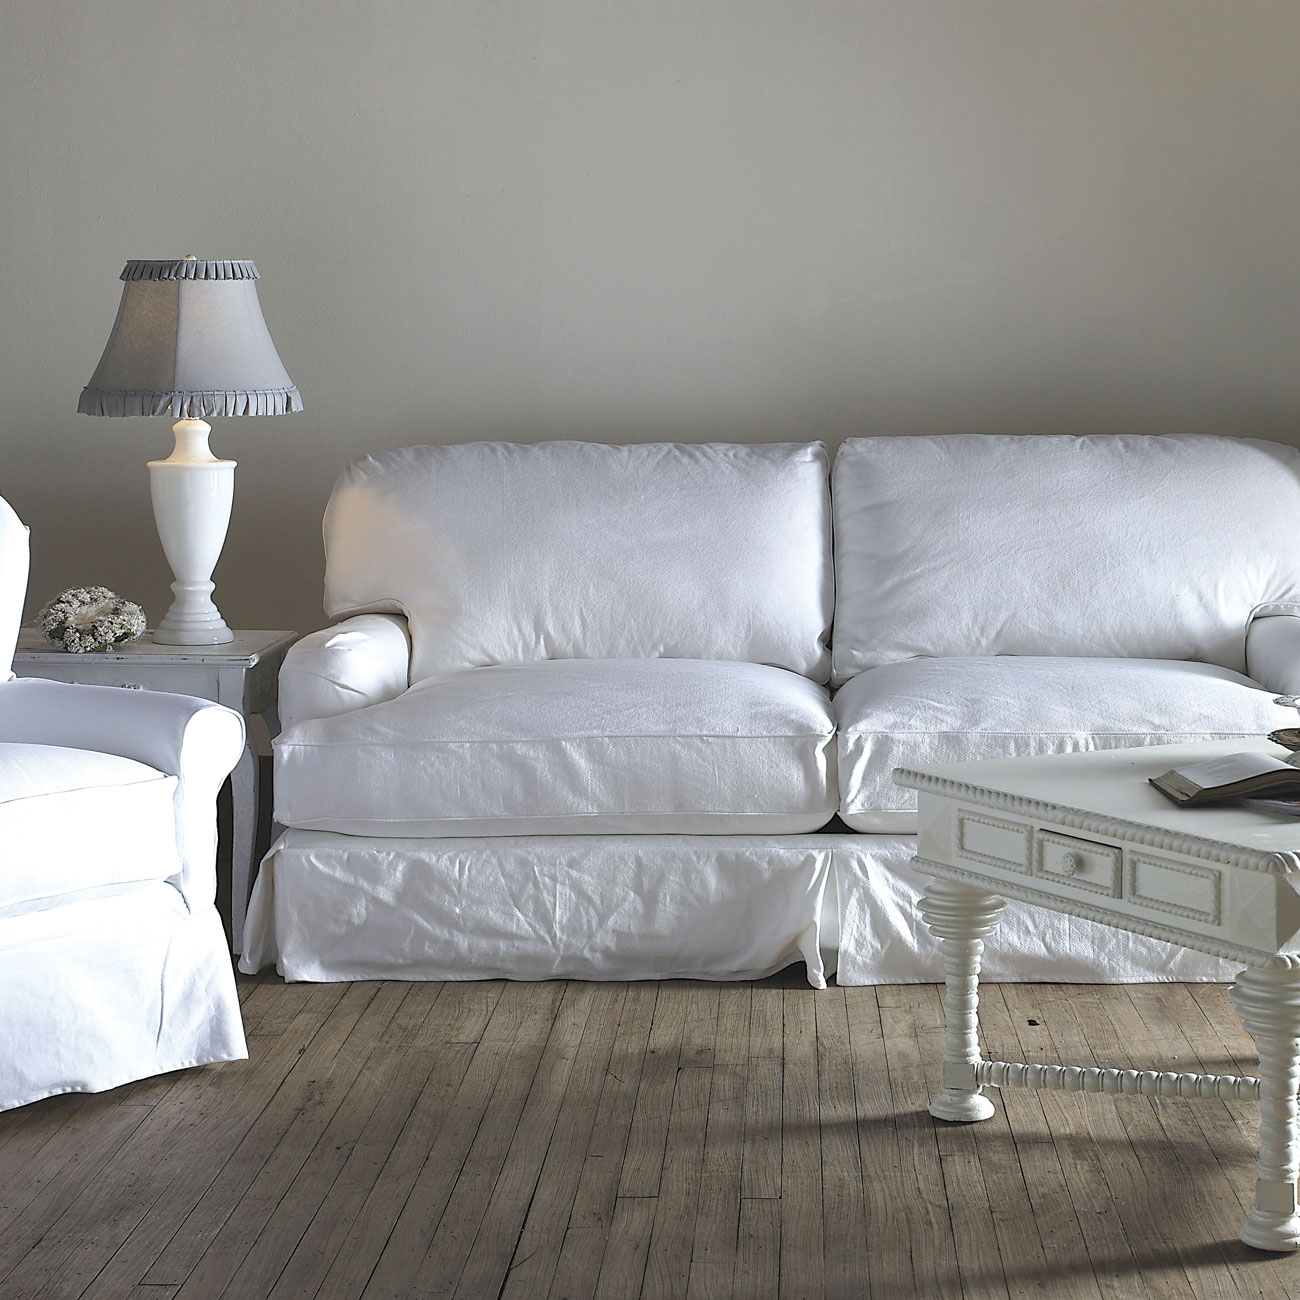 25 Cozy Shabby Chic Furniture Ideas For Your Home | Top Home Designs With Shabby Chic Sofas (Image 1 of 10)